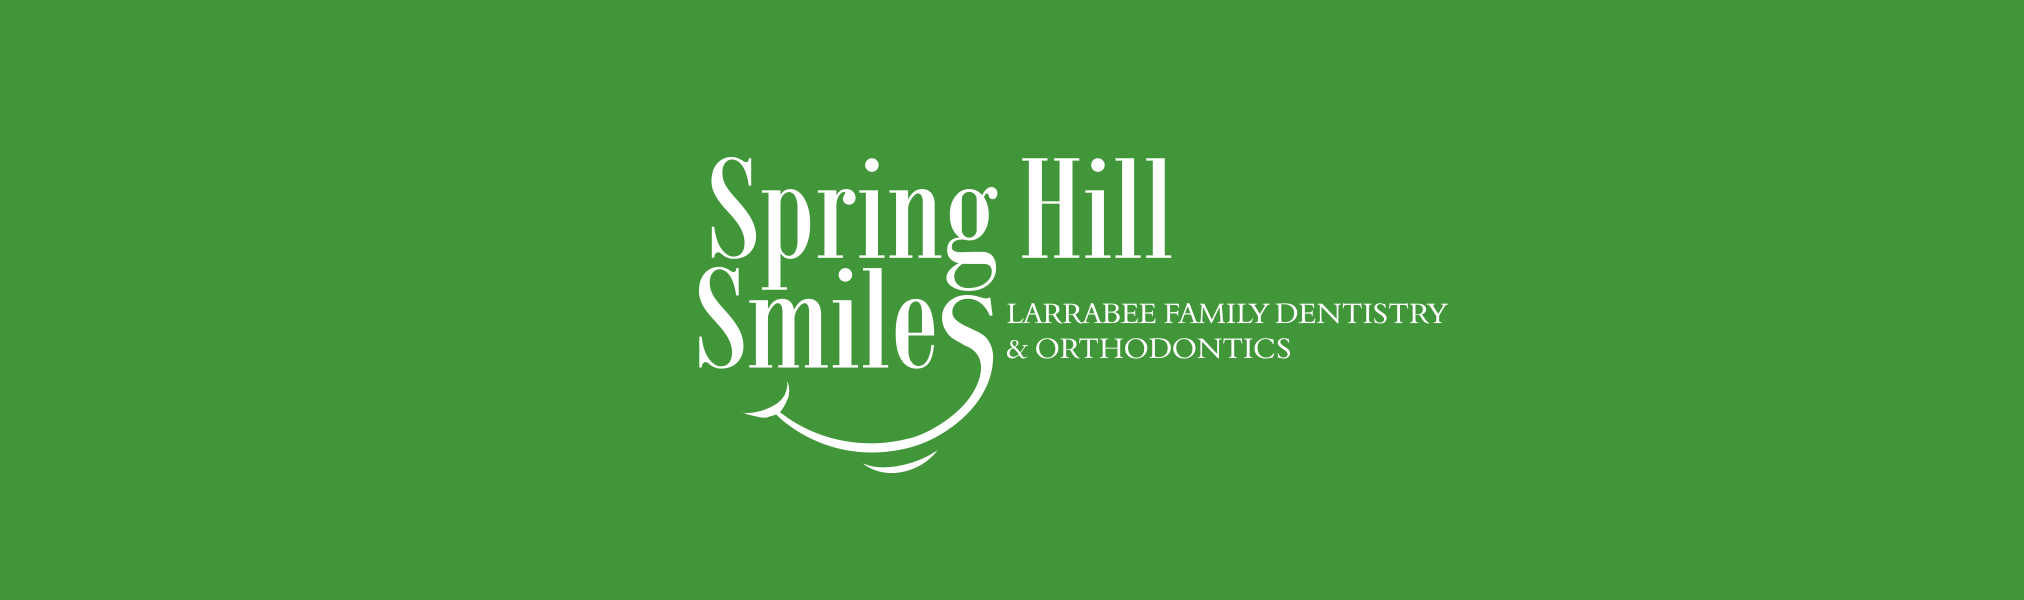 Spring Hill Smiles